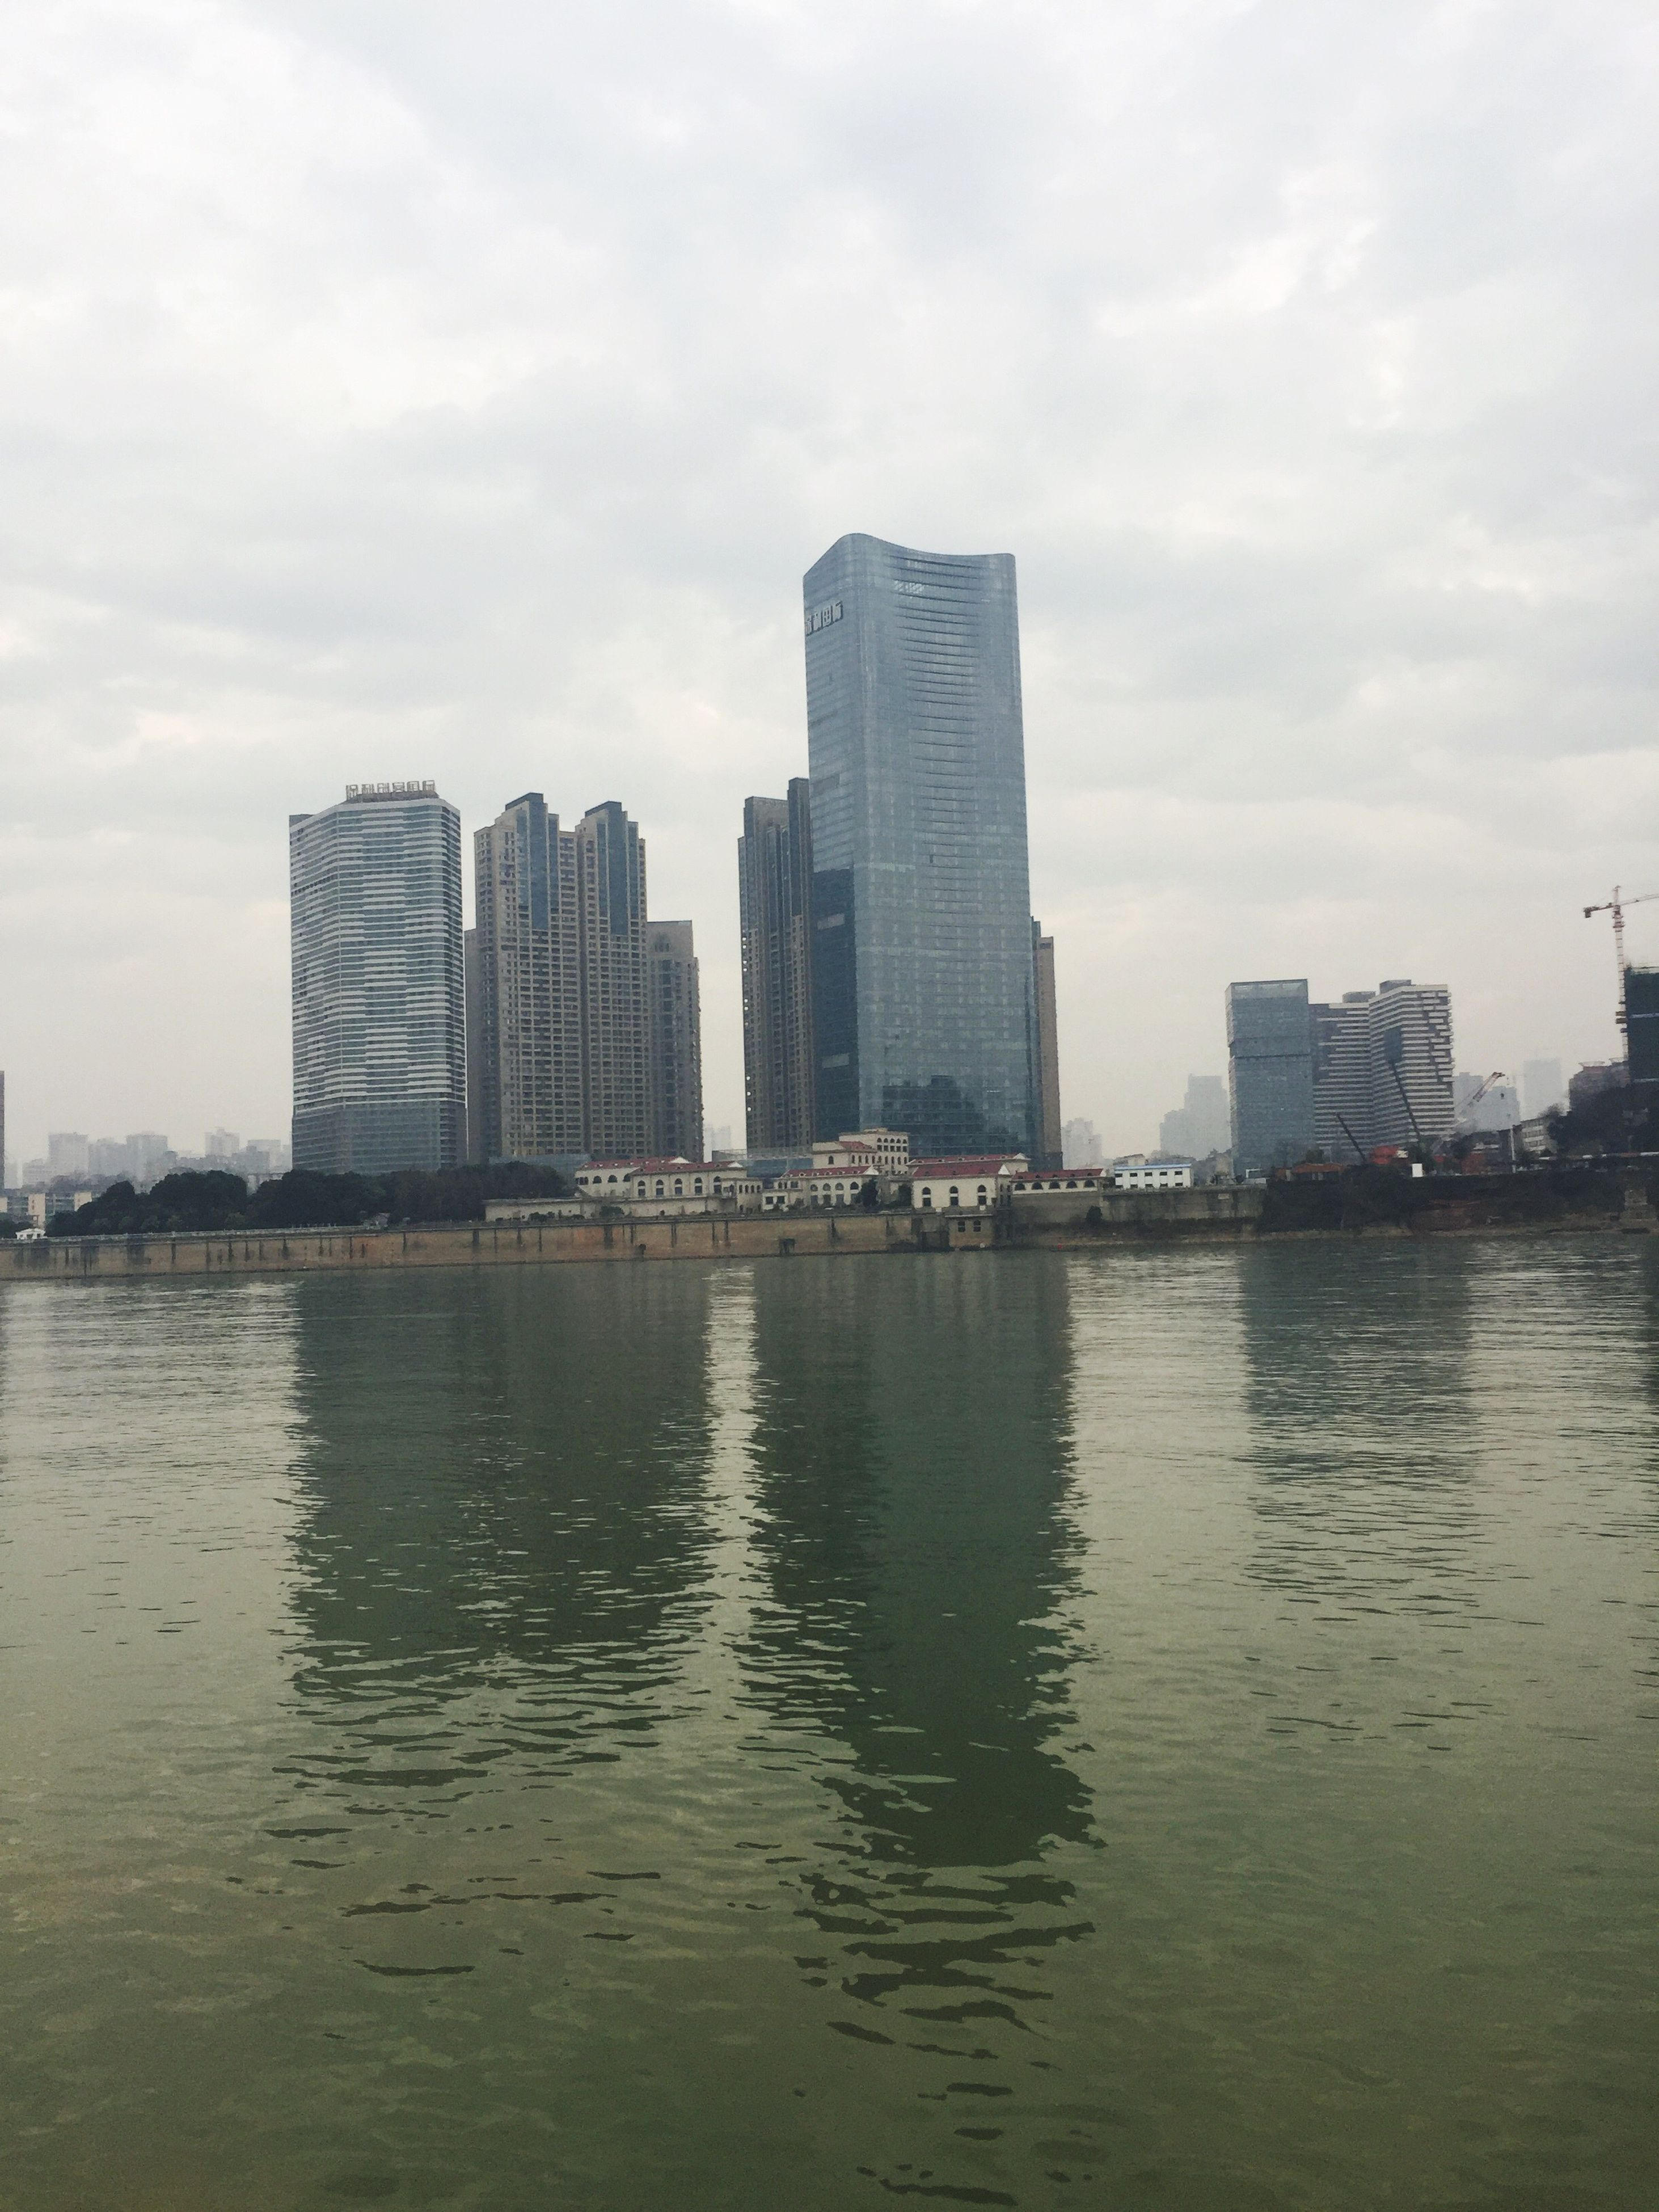 city, building exterior, architecture, skyscraper, built structure, water, urban skyline, sky, cityscape, cloud - sky, modern, outdoors, building, day, no people, residential building, nature, downtown district